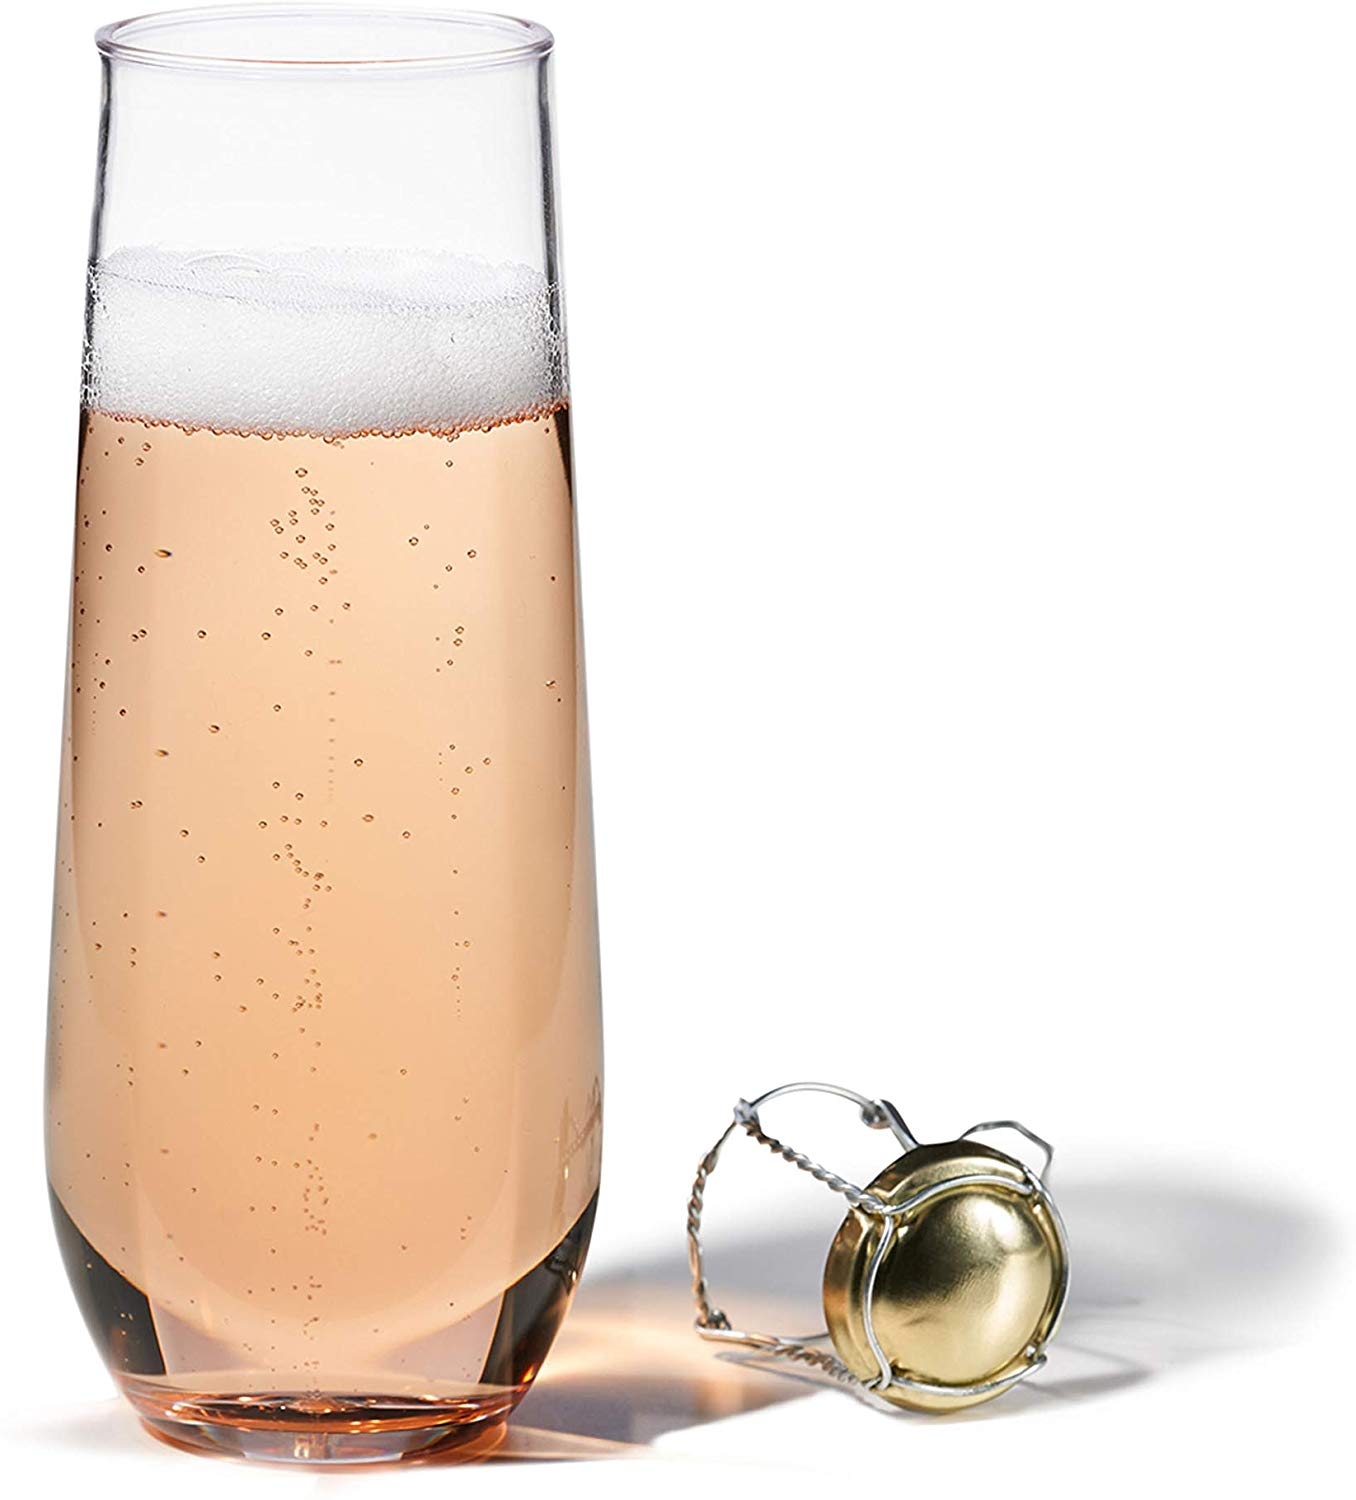 Tossware's polymer champagne flutes